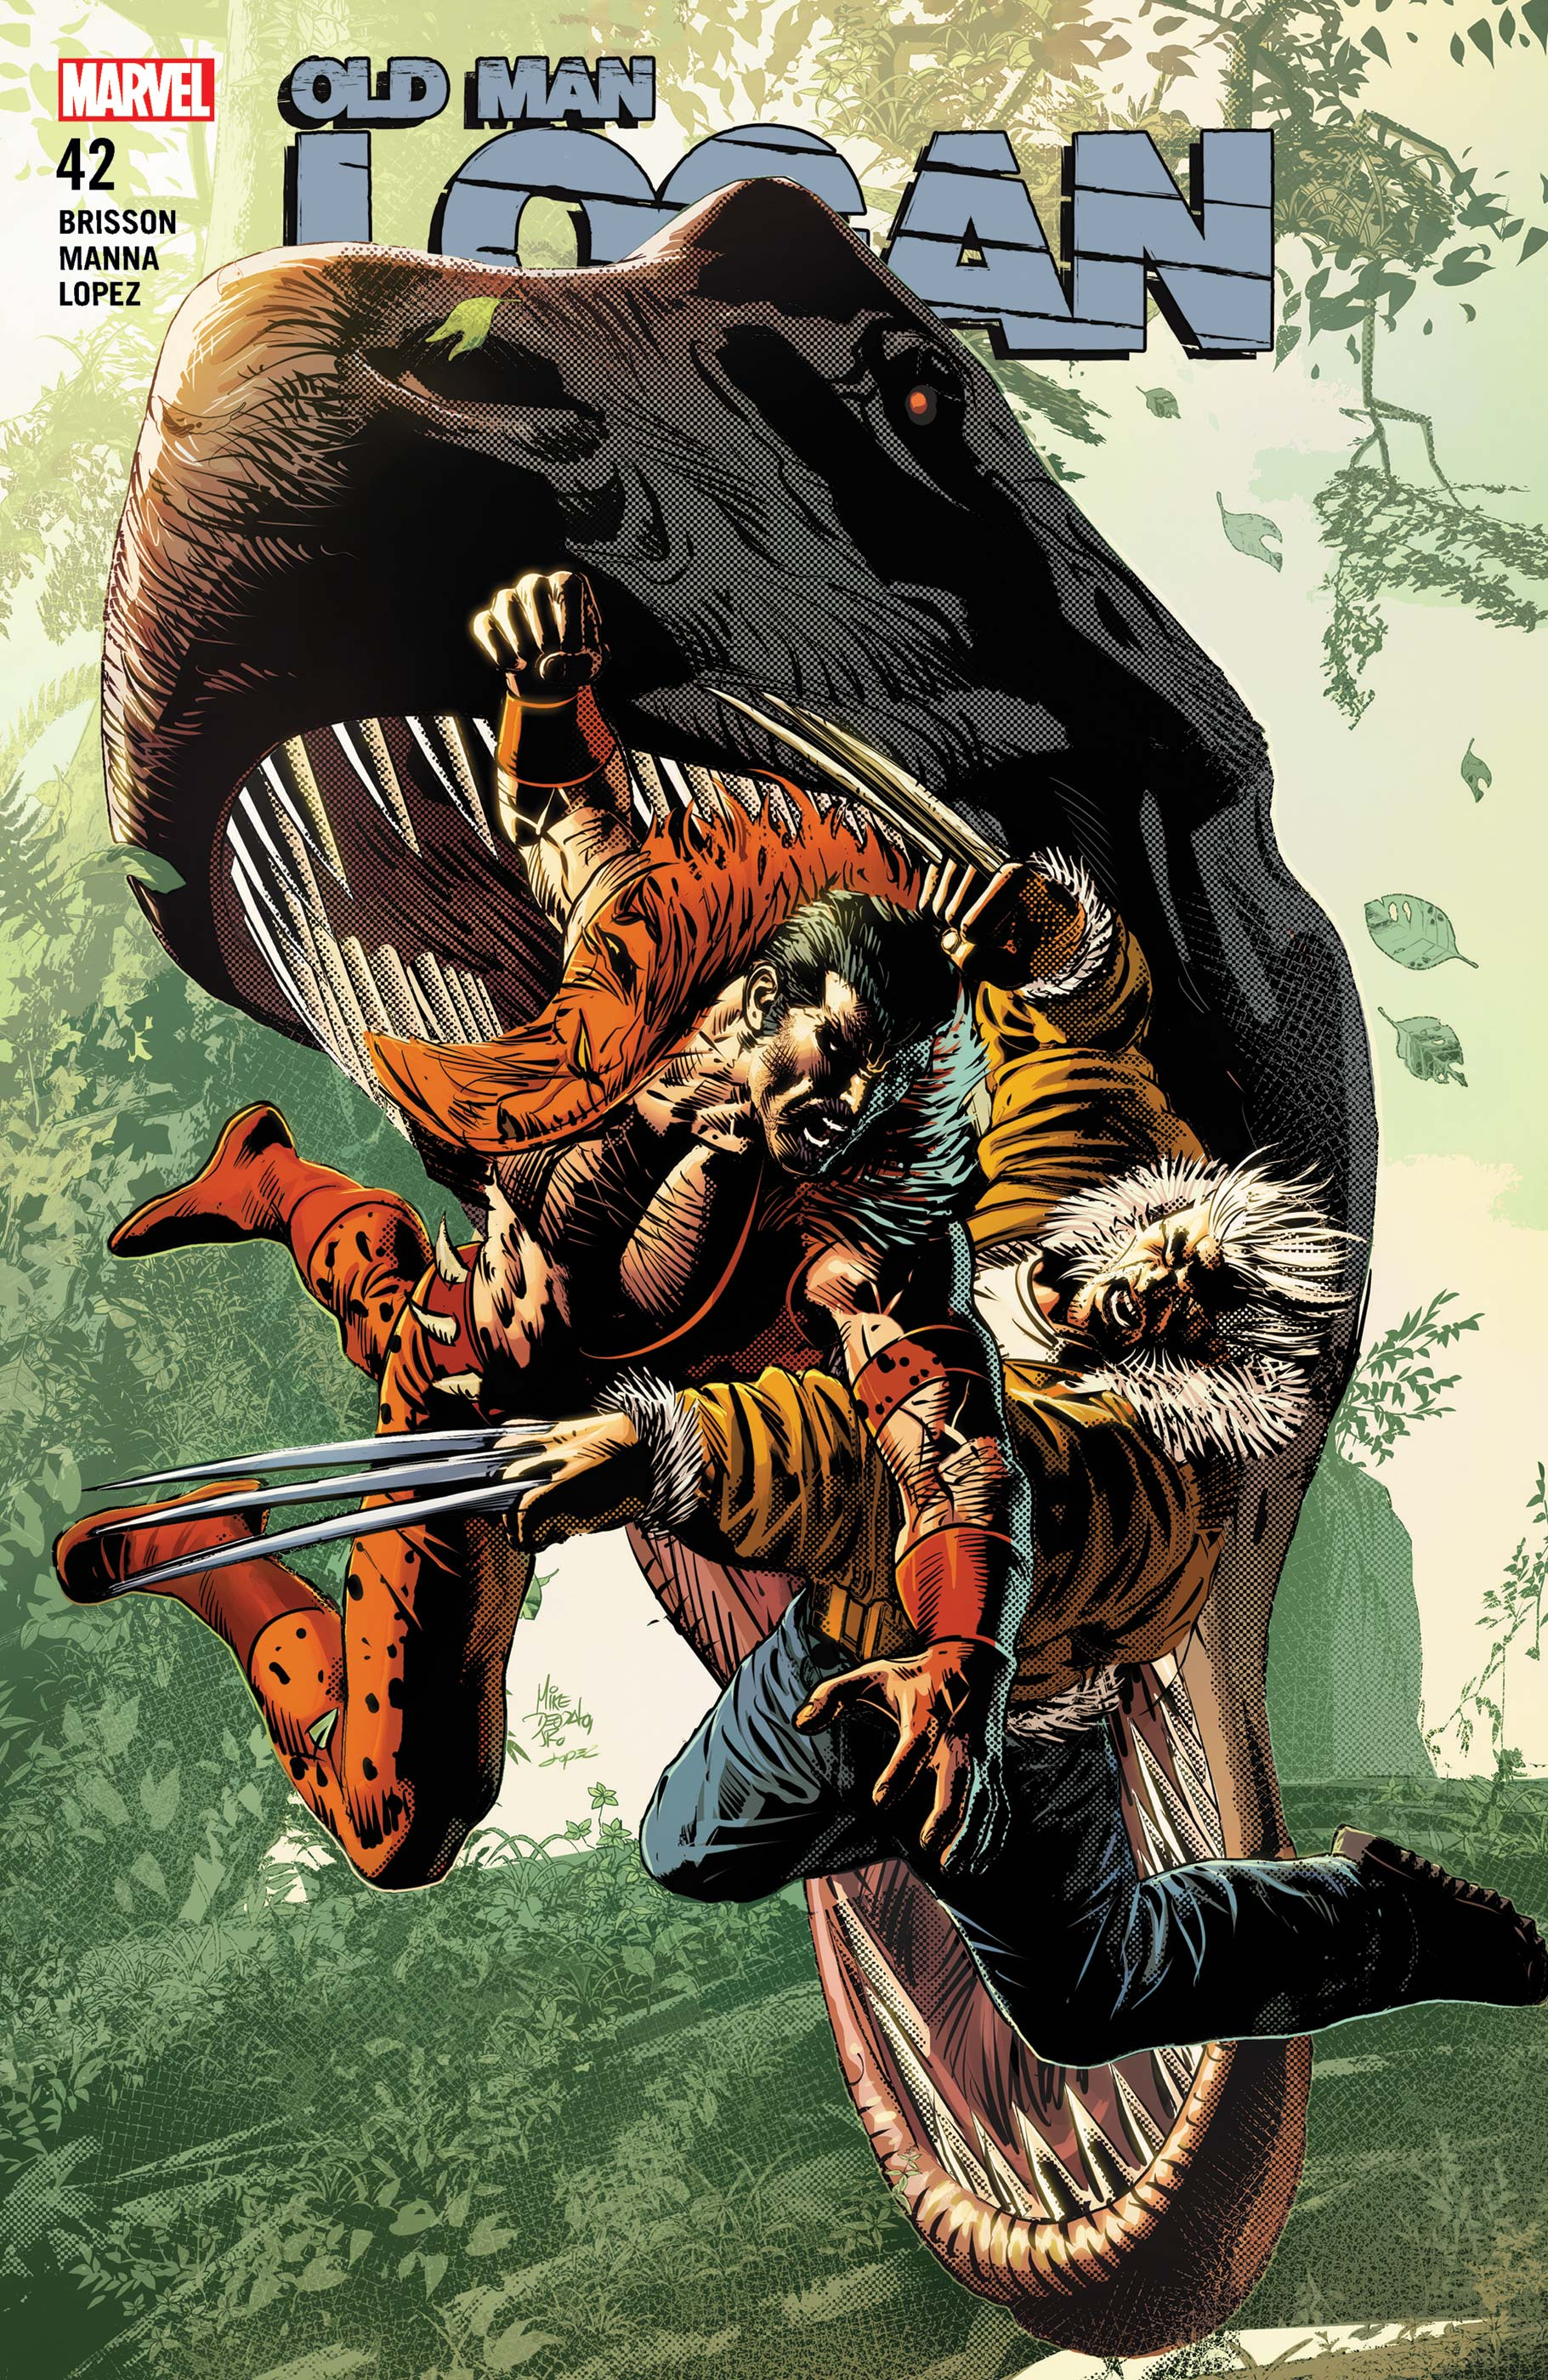 Old Man Logan (2016) #42